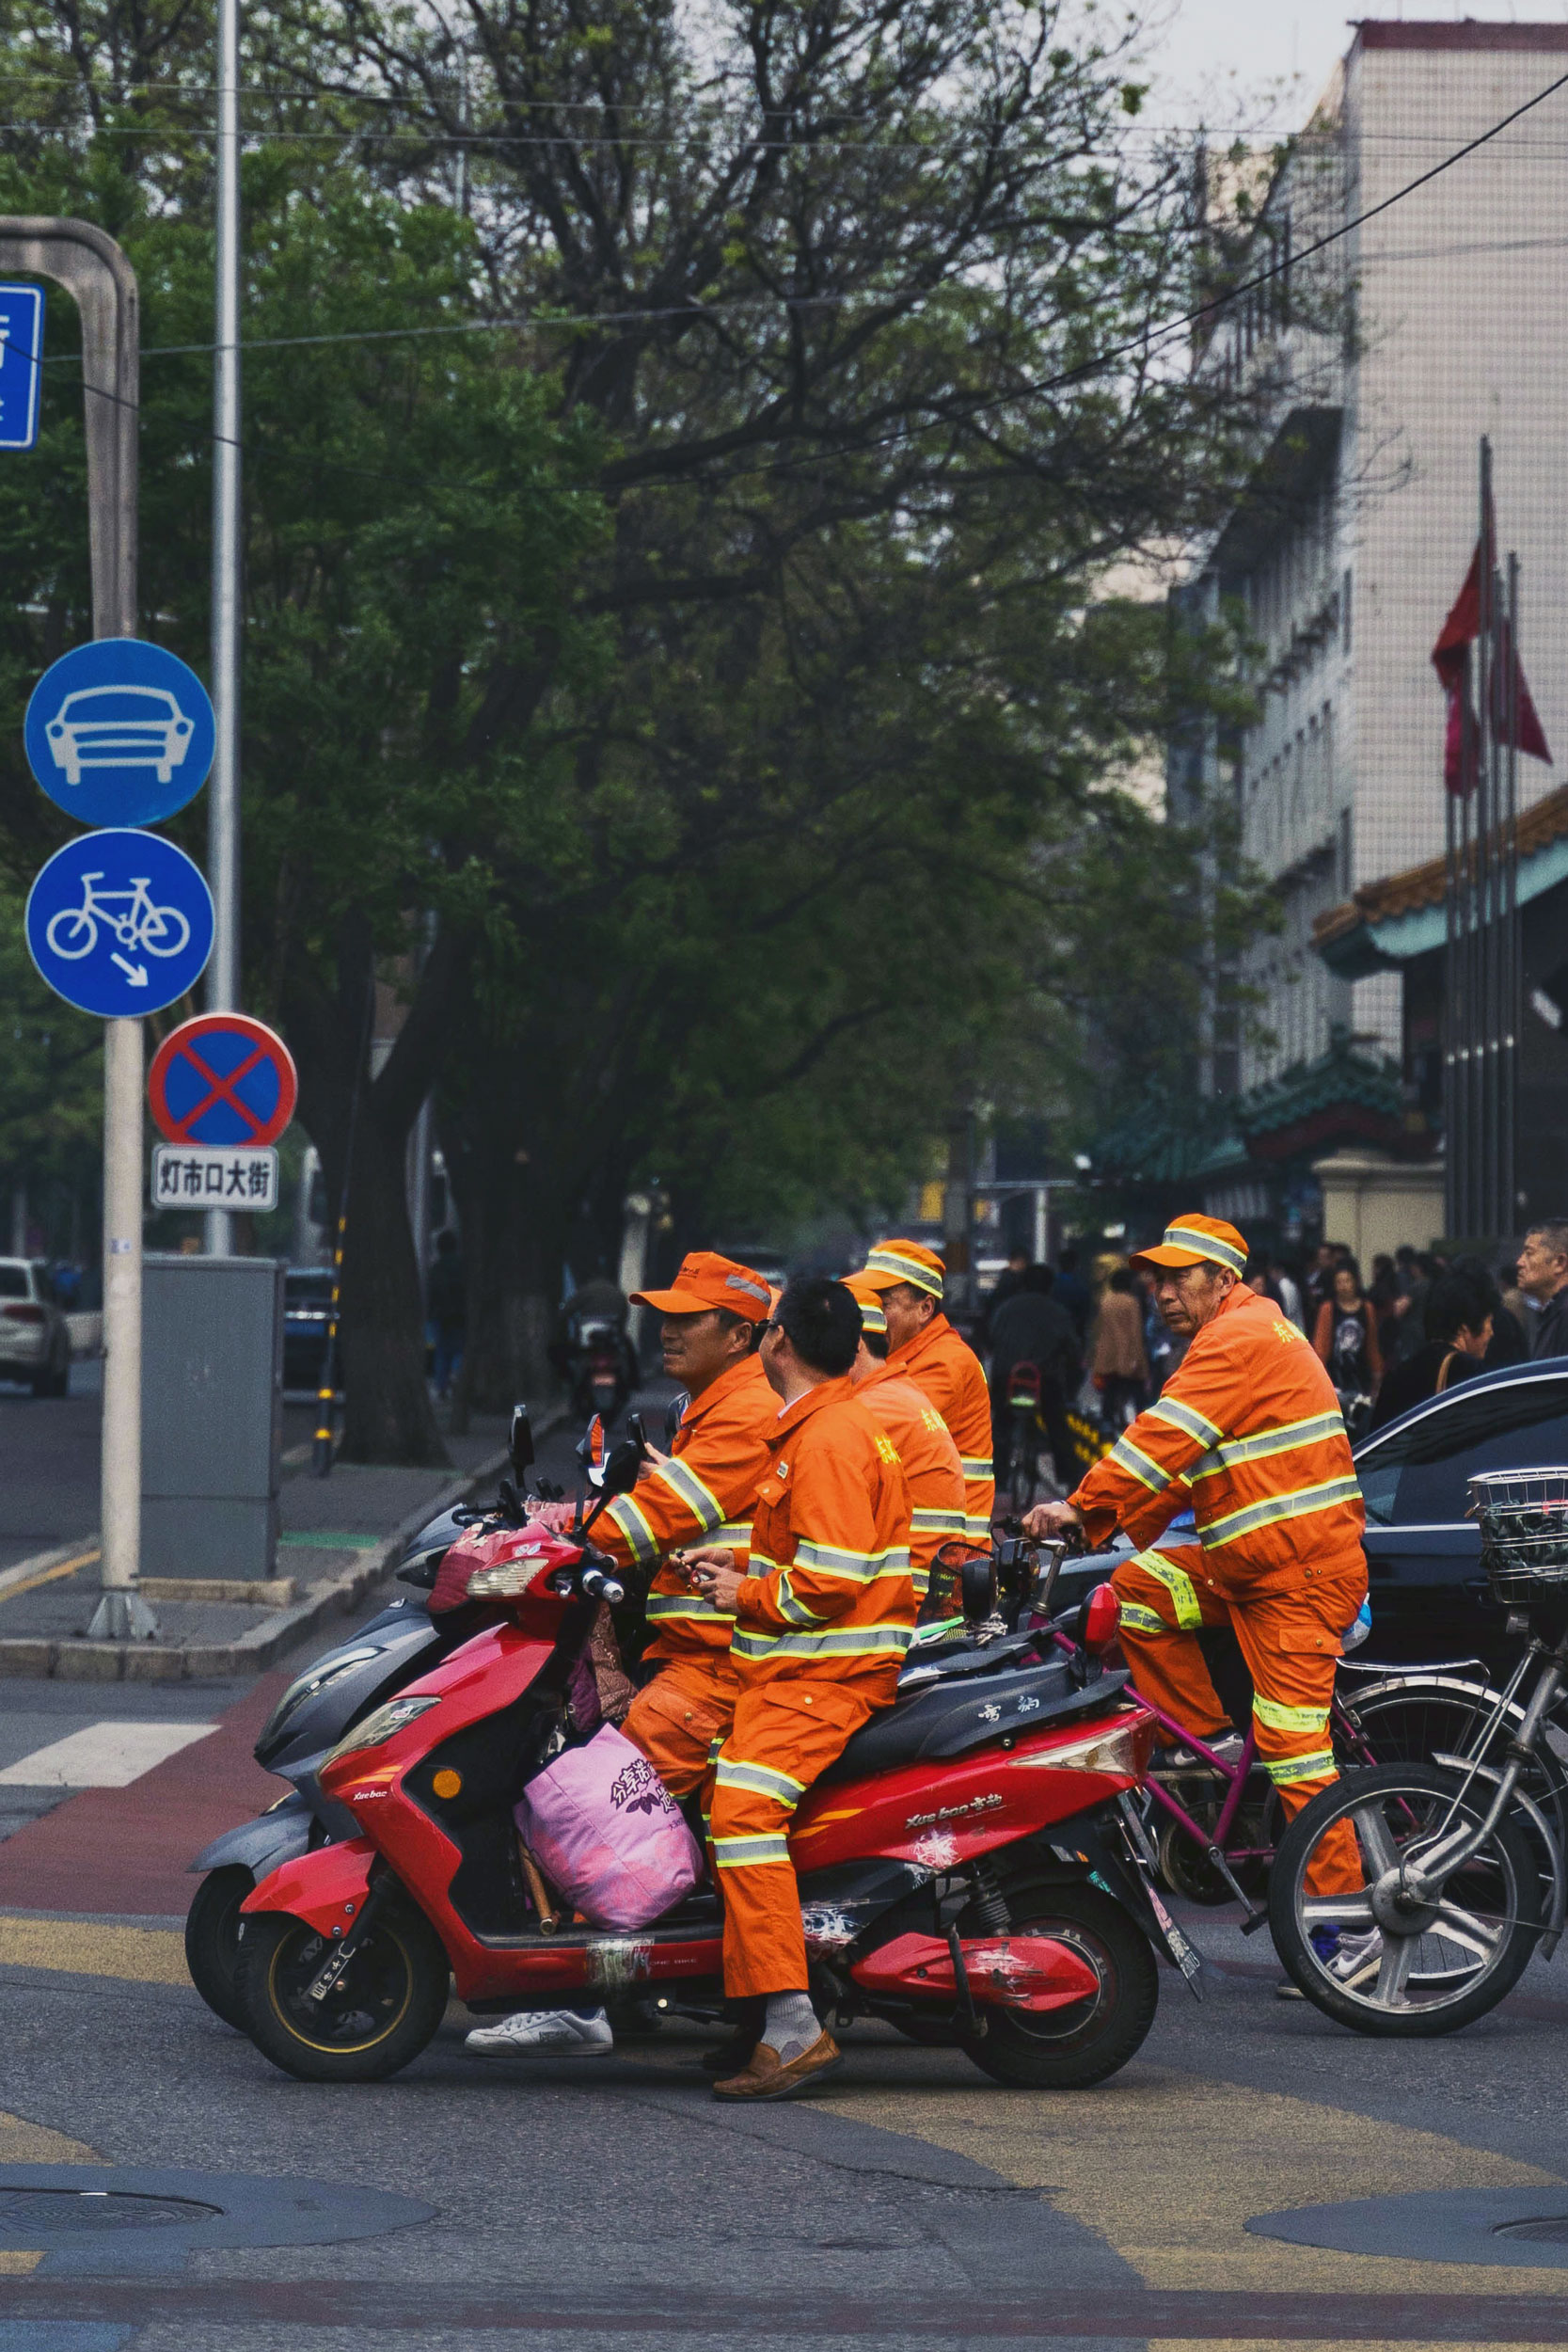 Some workers stop at a traffic light on the way home.